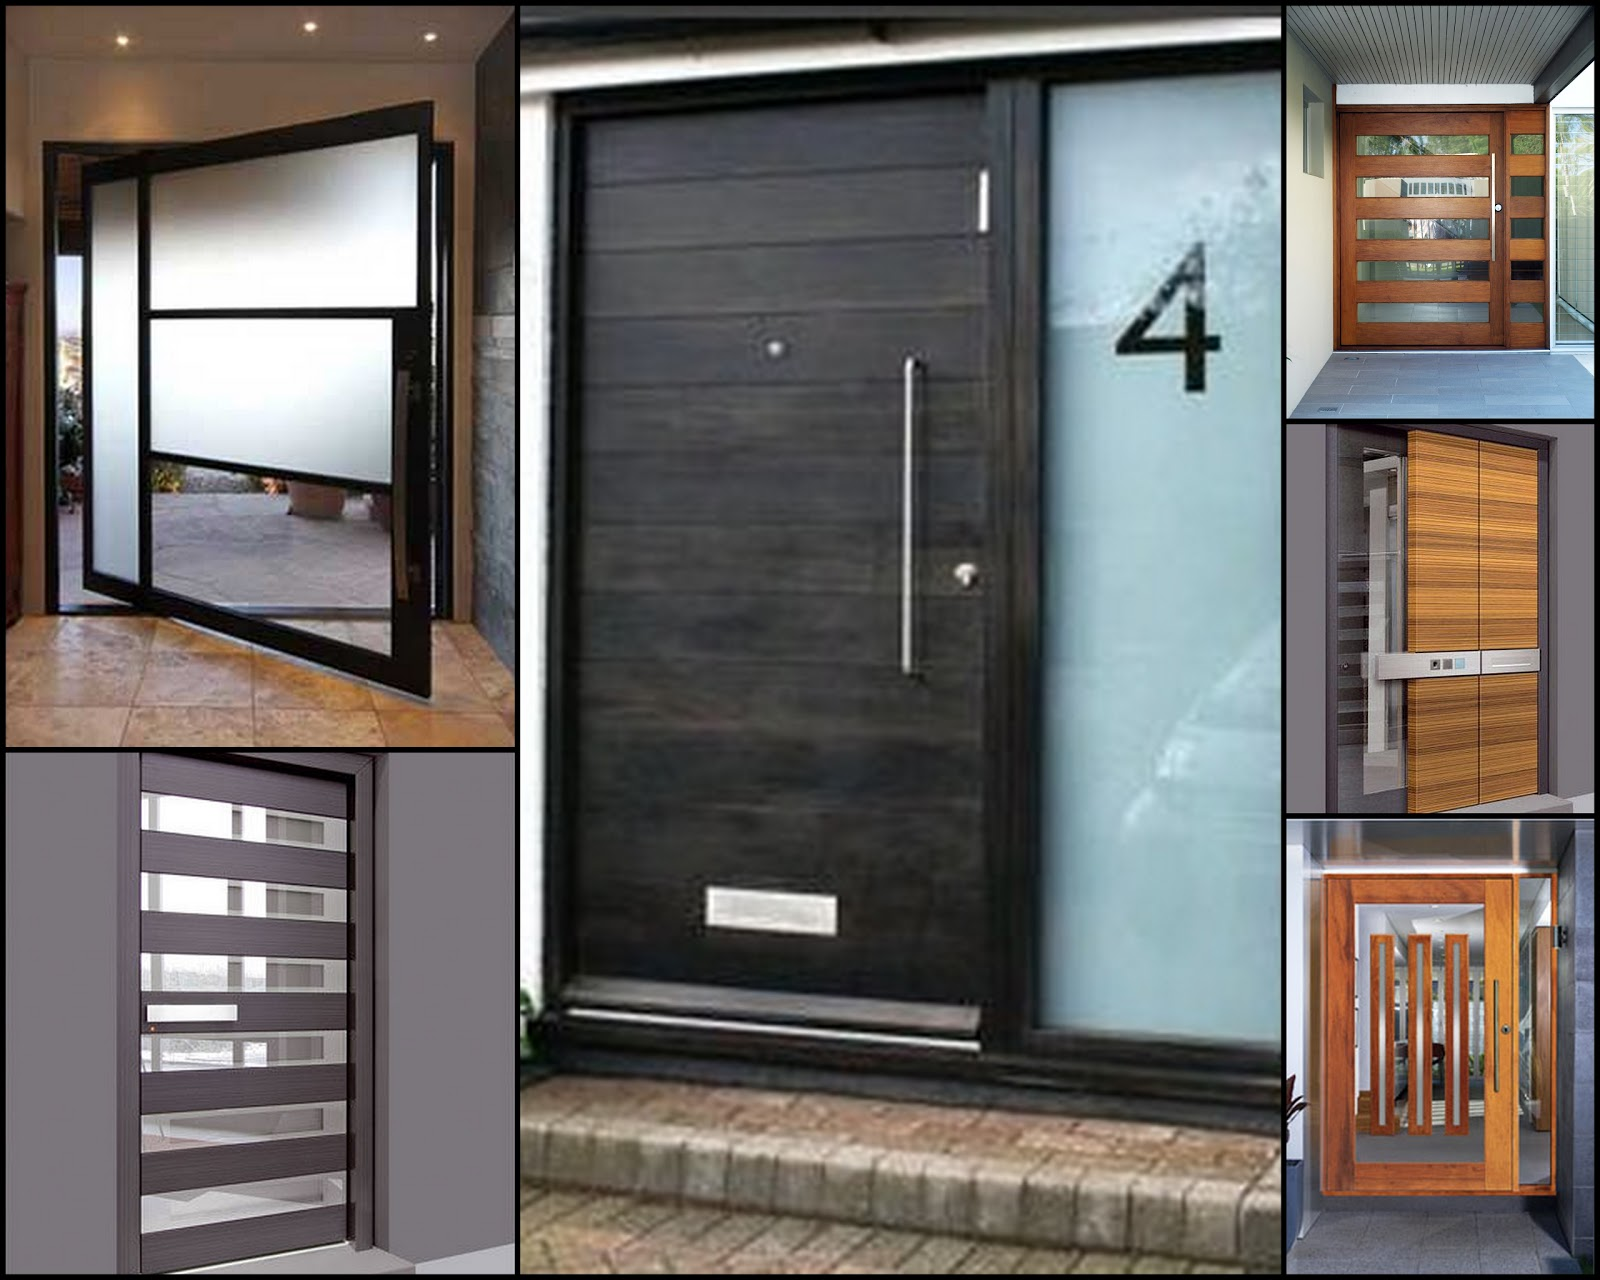 Stephieb knock knock - Commercial steel exterior doors with glass ...